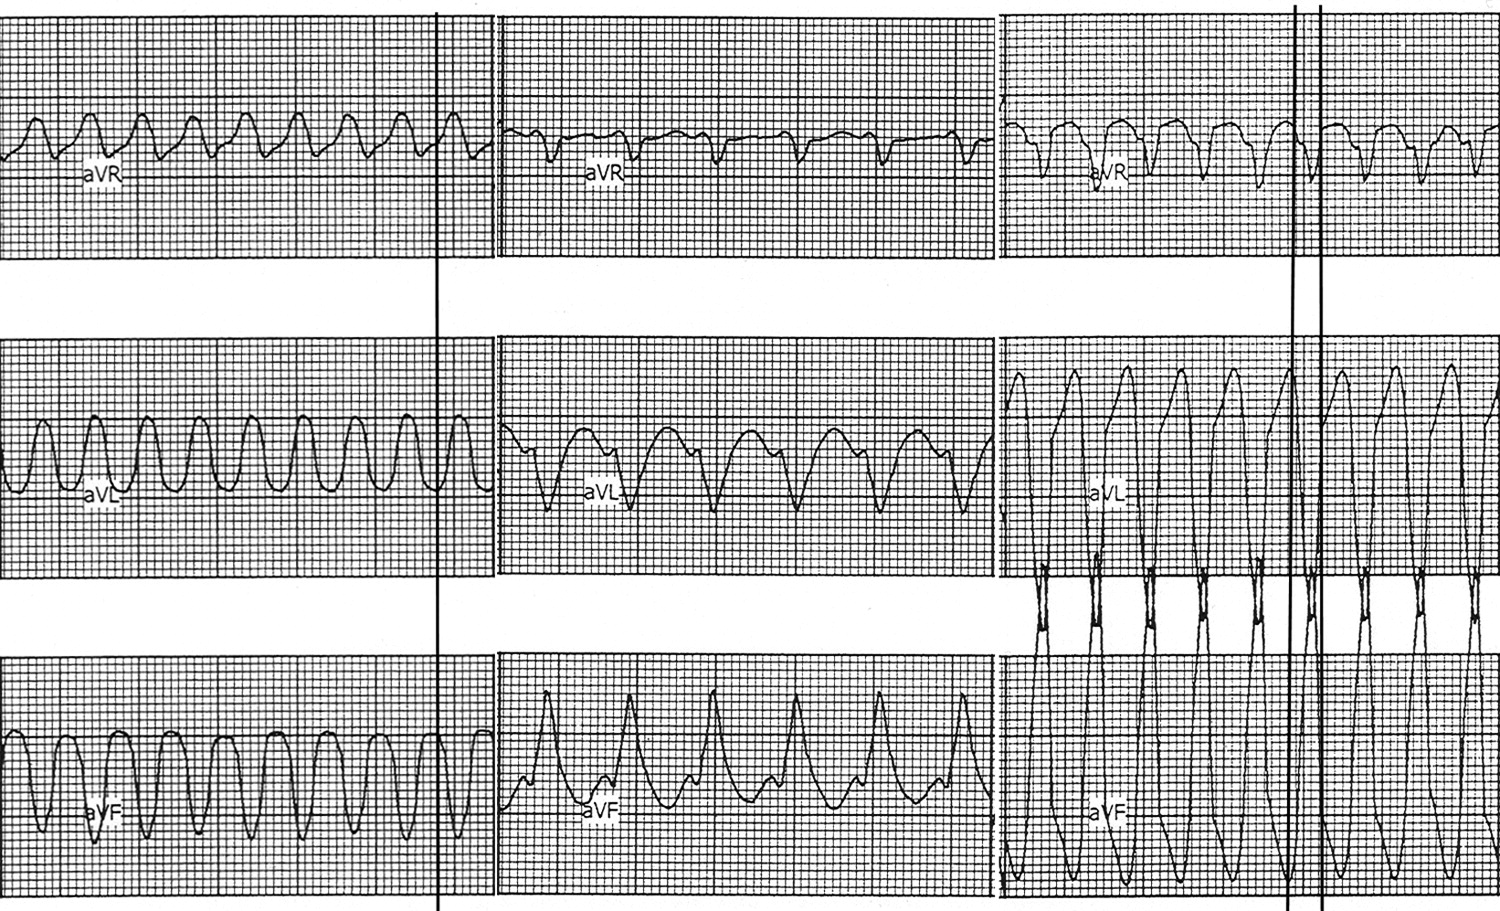 New Algorithm Using Only Lead Avr For Differential Diagnosis Of Wide Qrs Complex Tachycardia